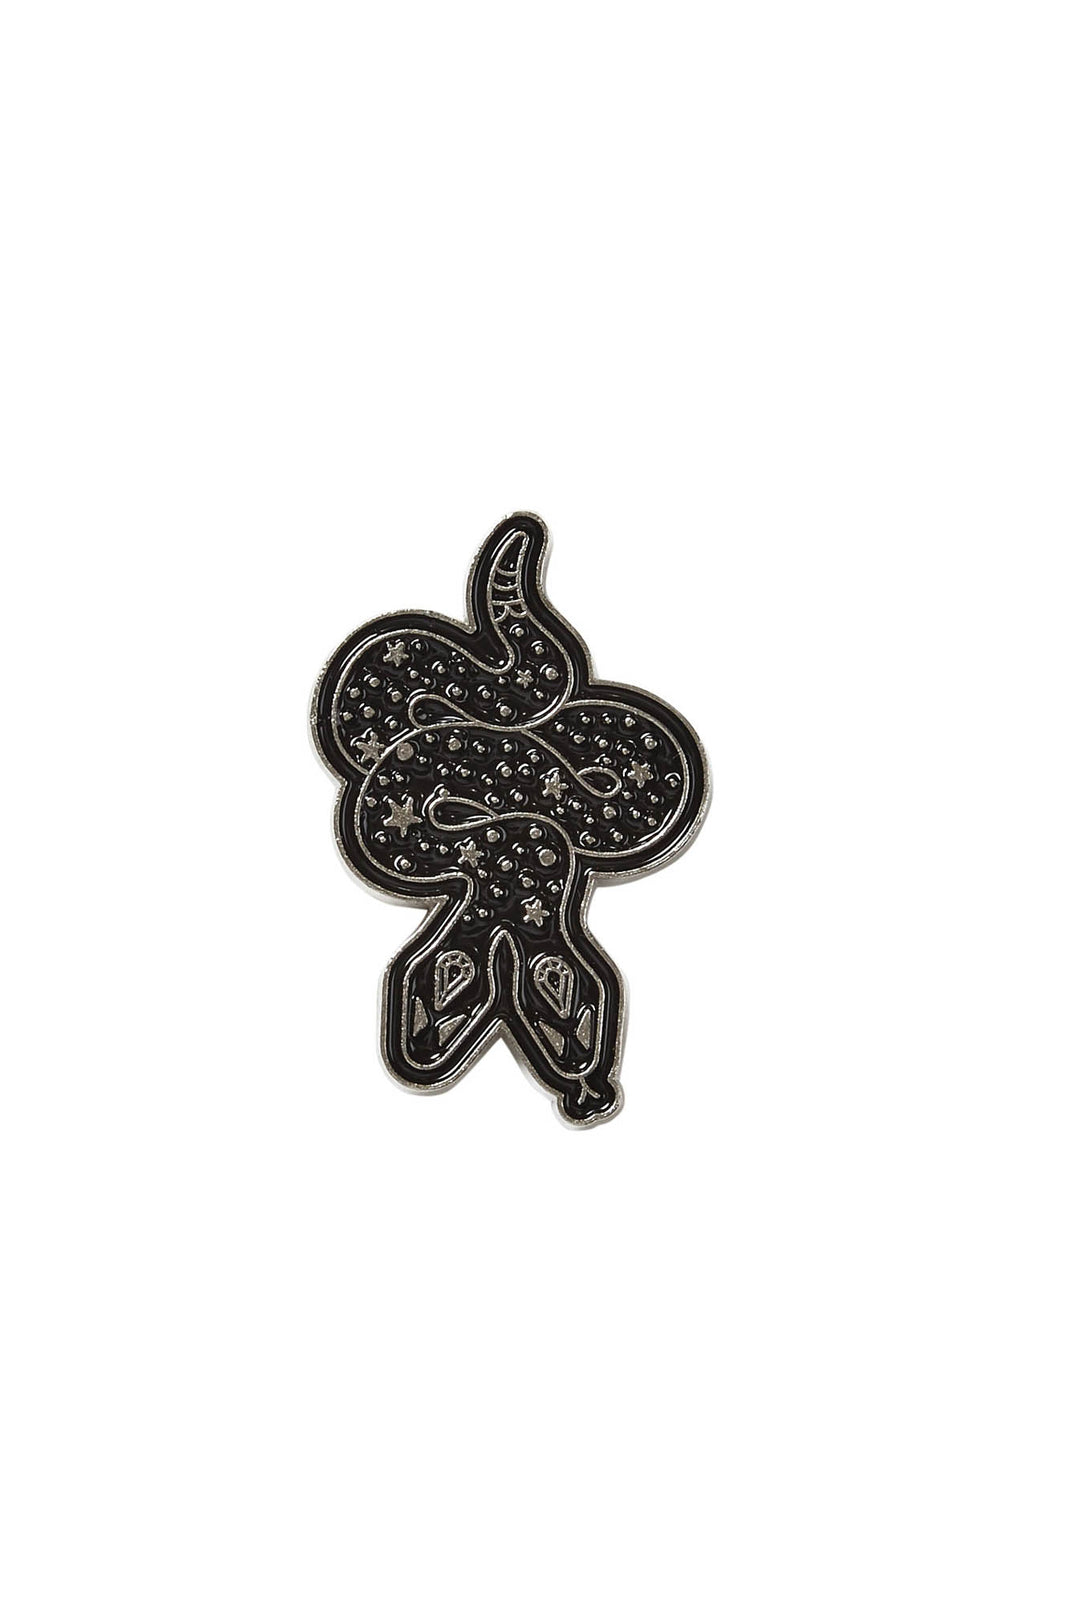 Cross Badge Enamel Pin Black 1 x 2cm